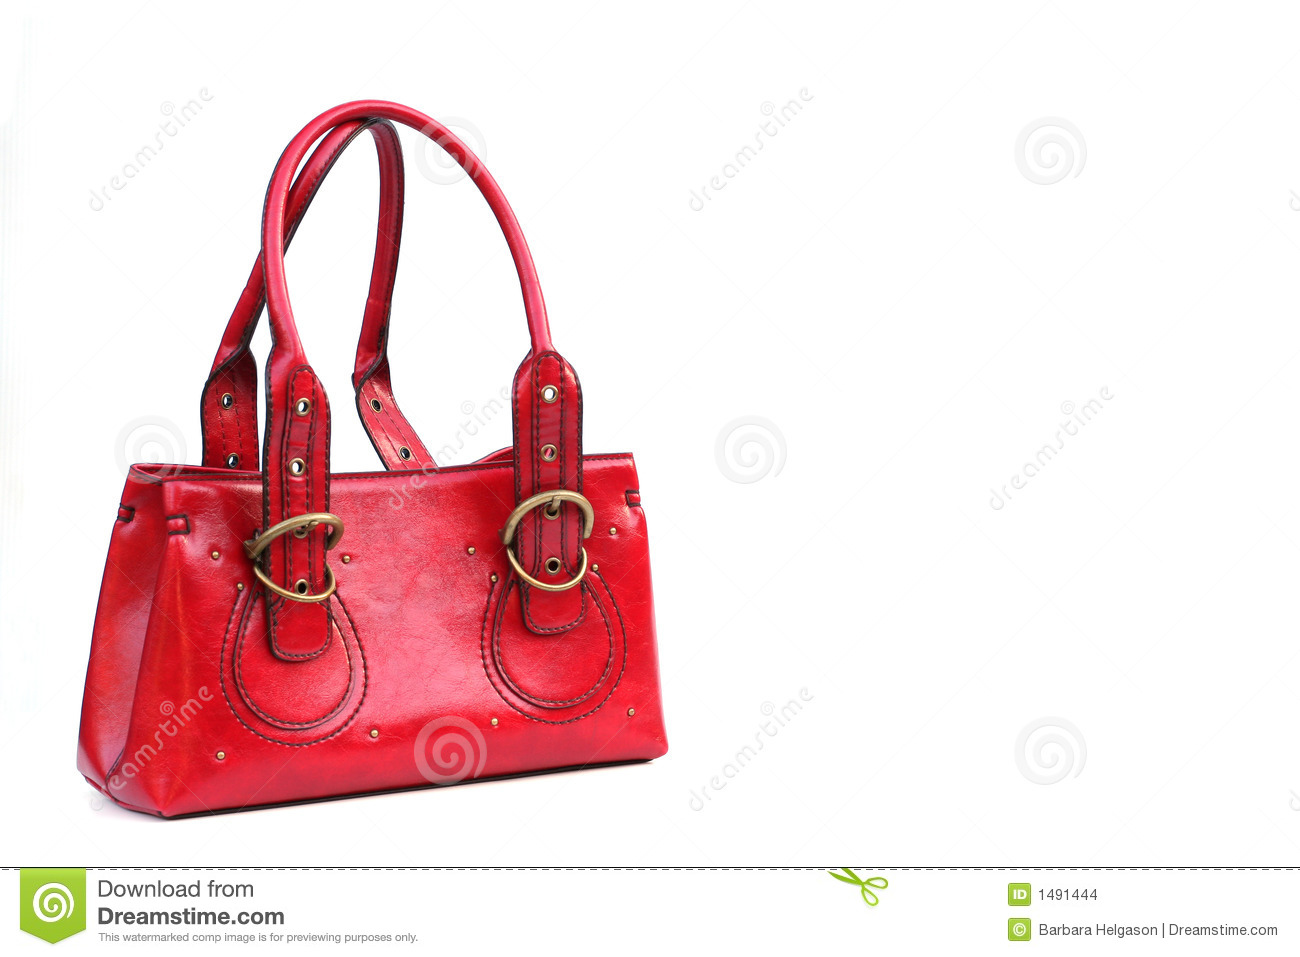 The little red purse